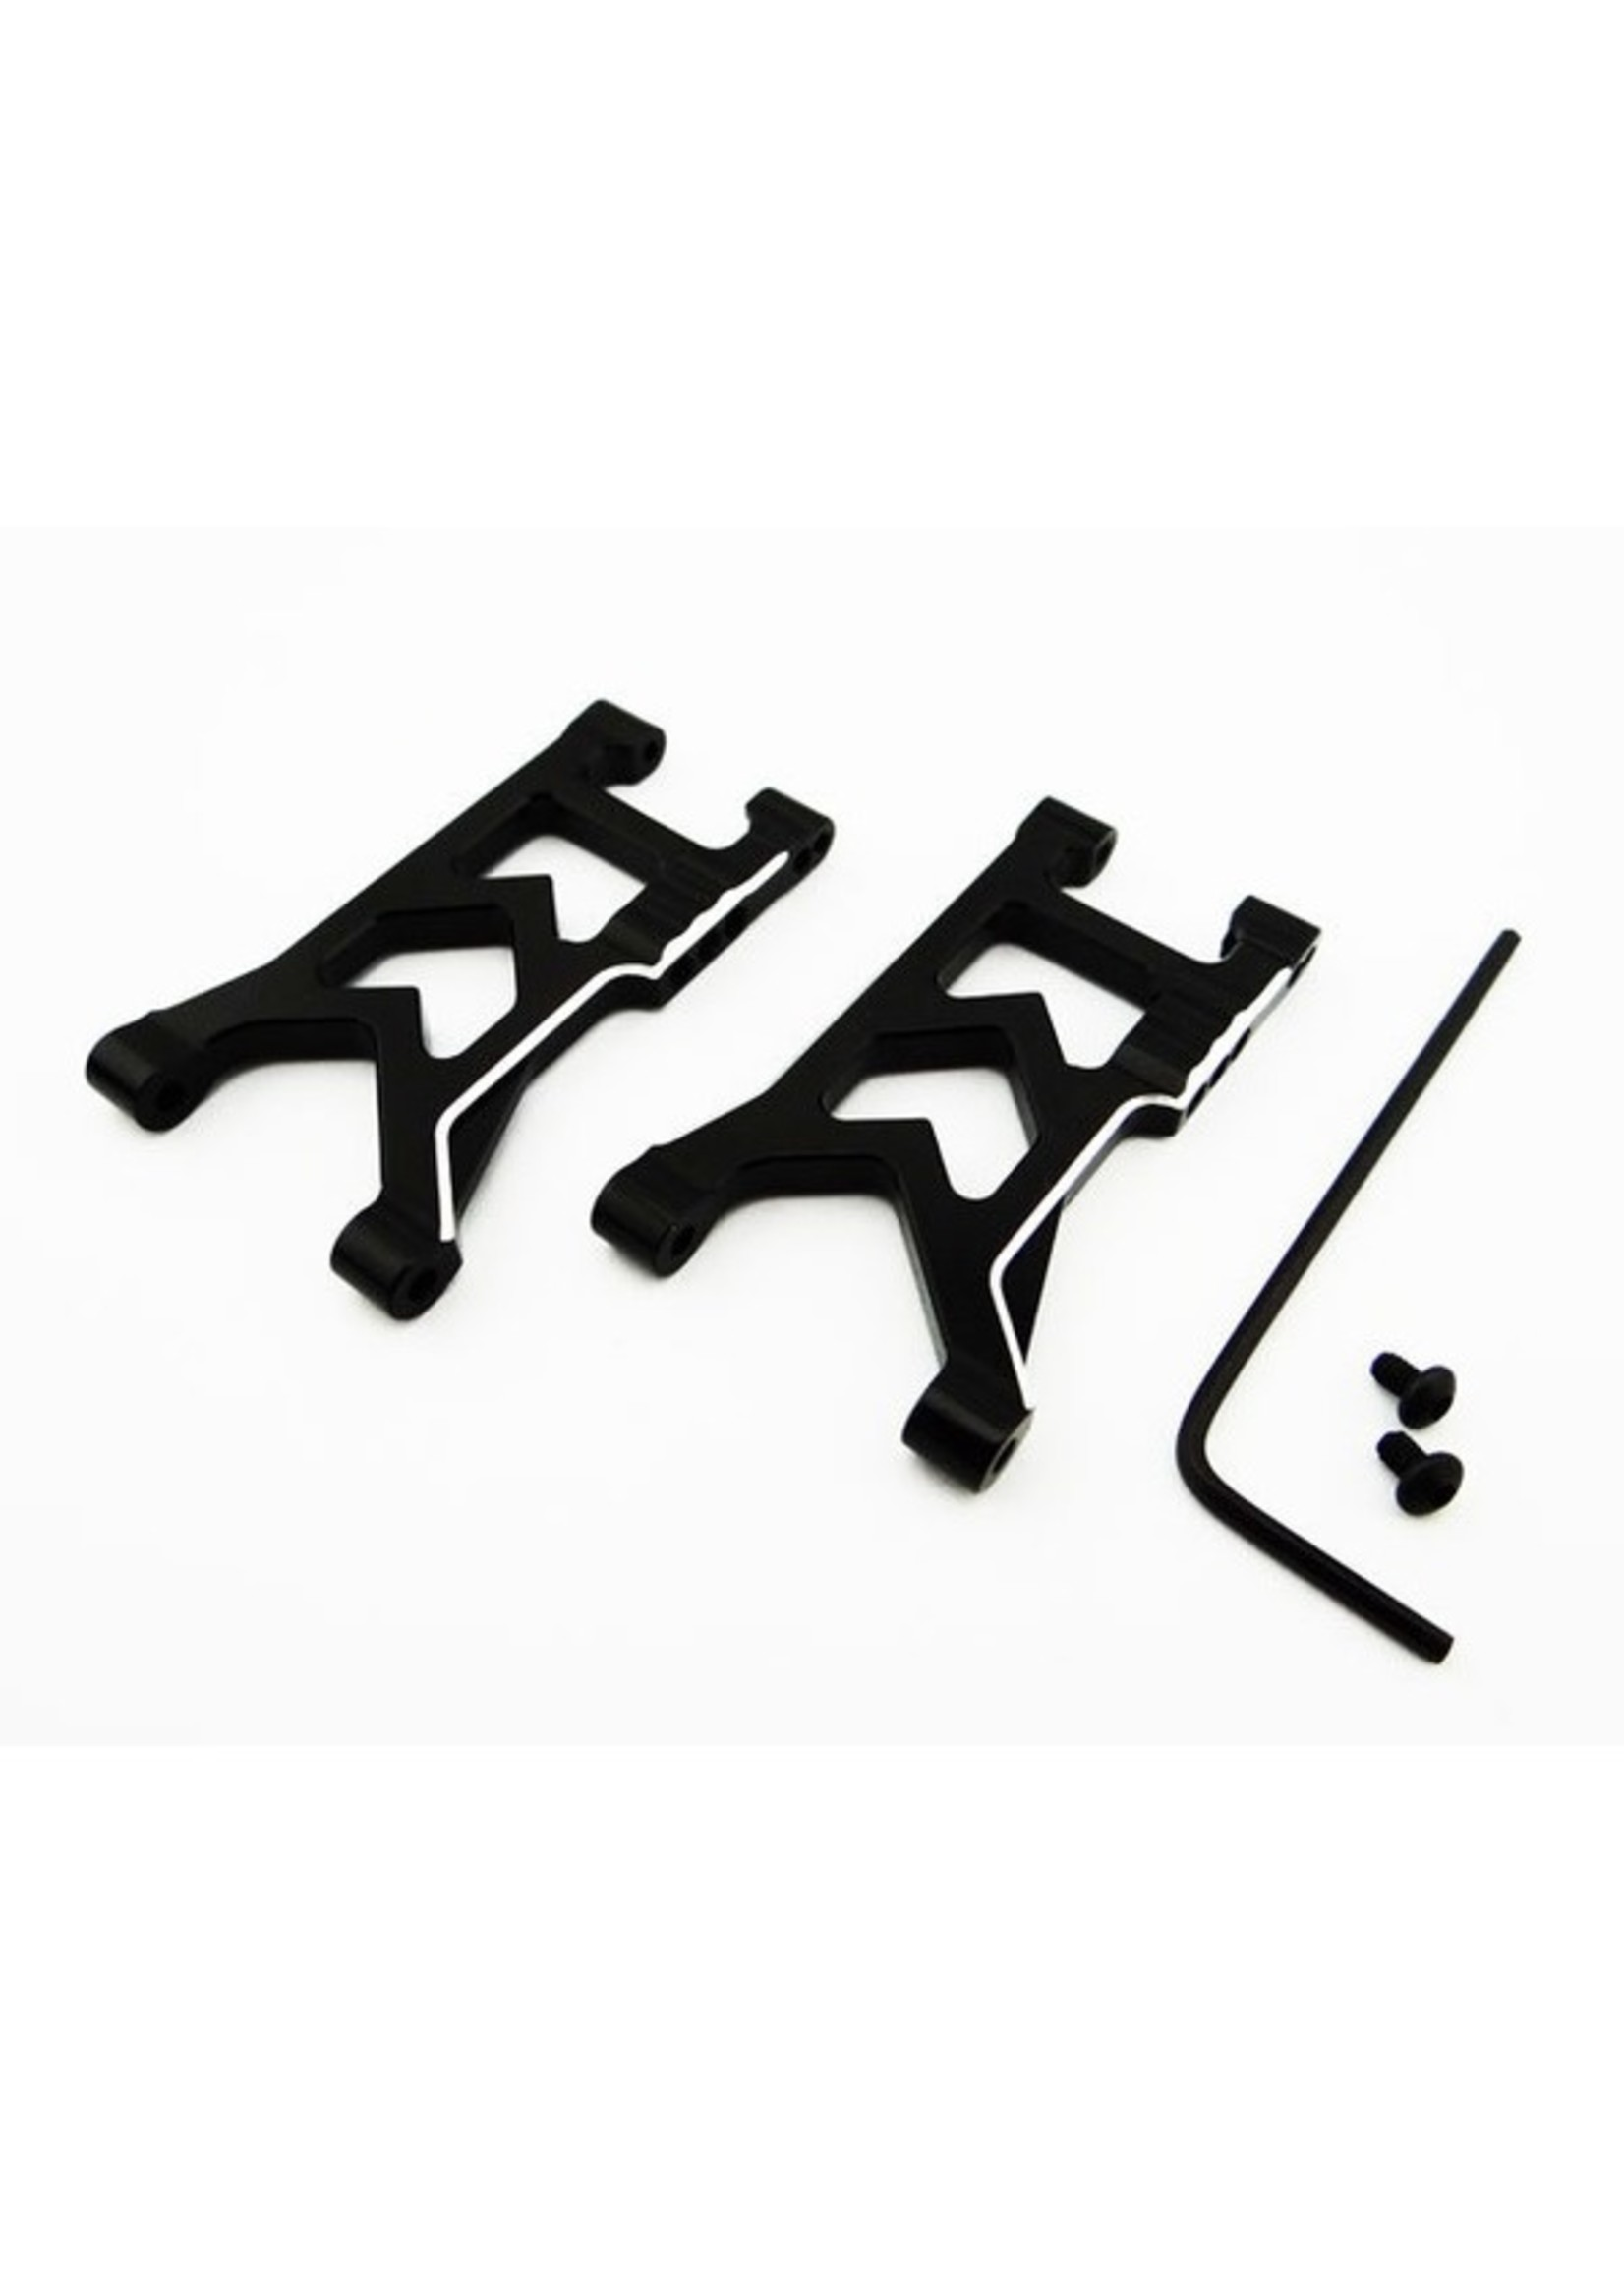 Hot Racing HRALTN5501  Lower Suspension Arms for La Trax SST and Teton vehicles